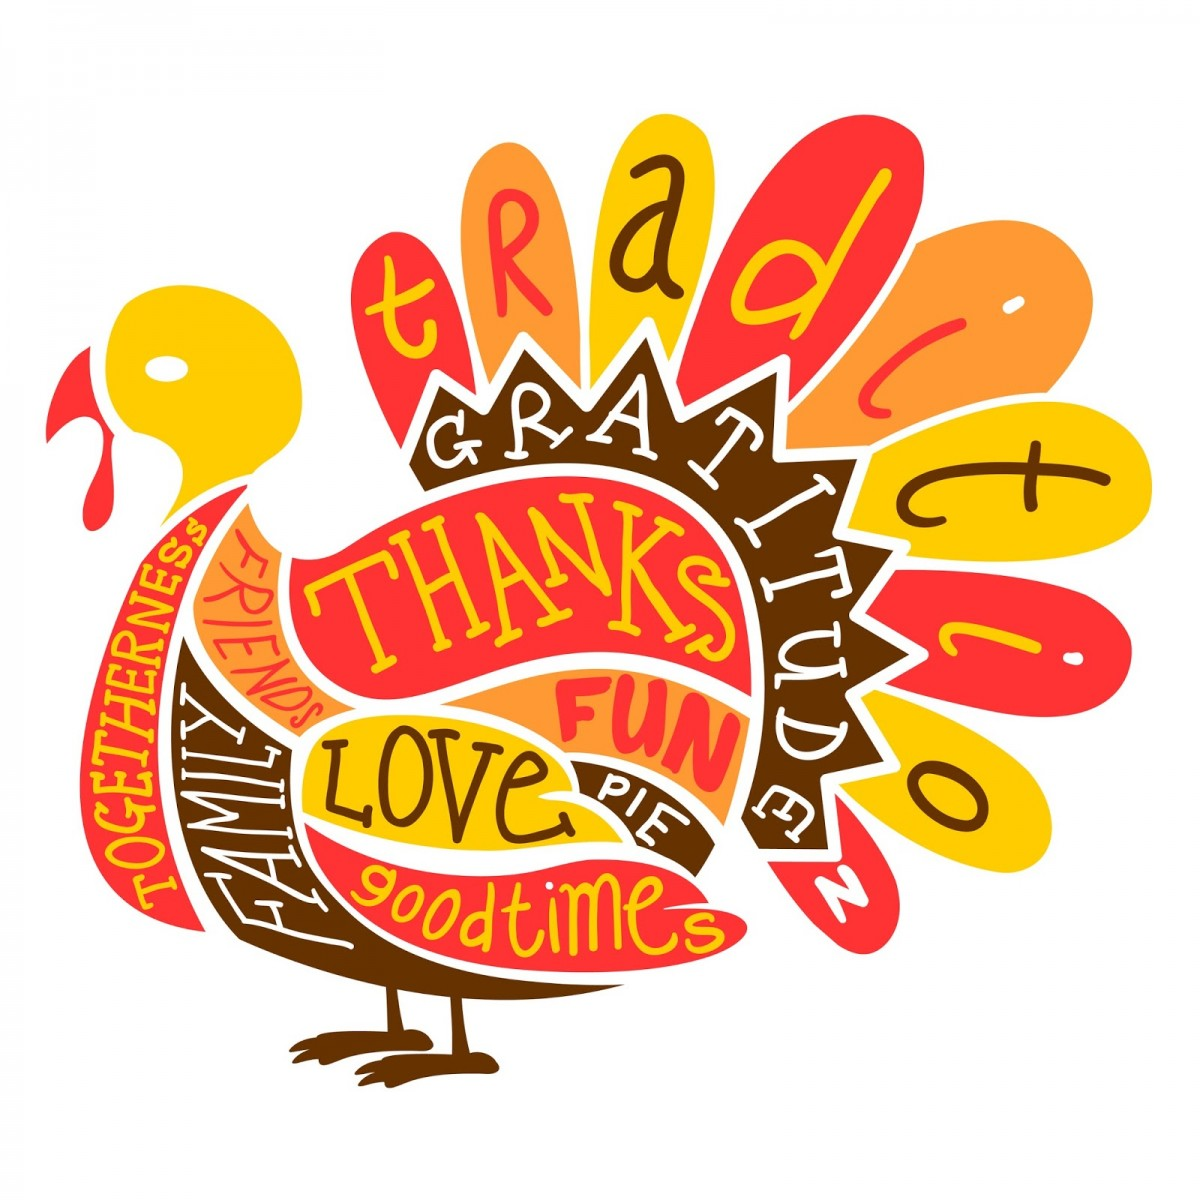 Thanksgiving is about Community; Community is about Mental Health